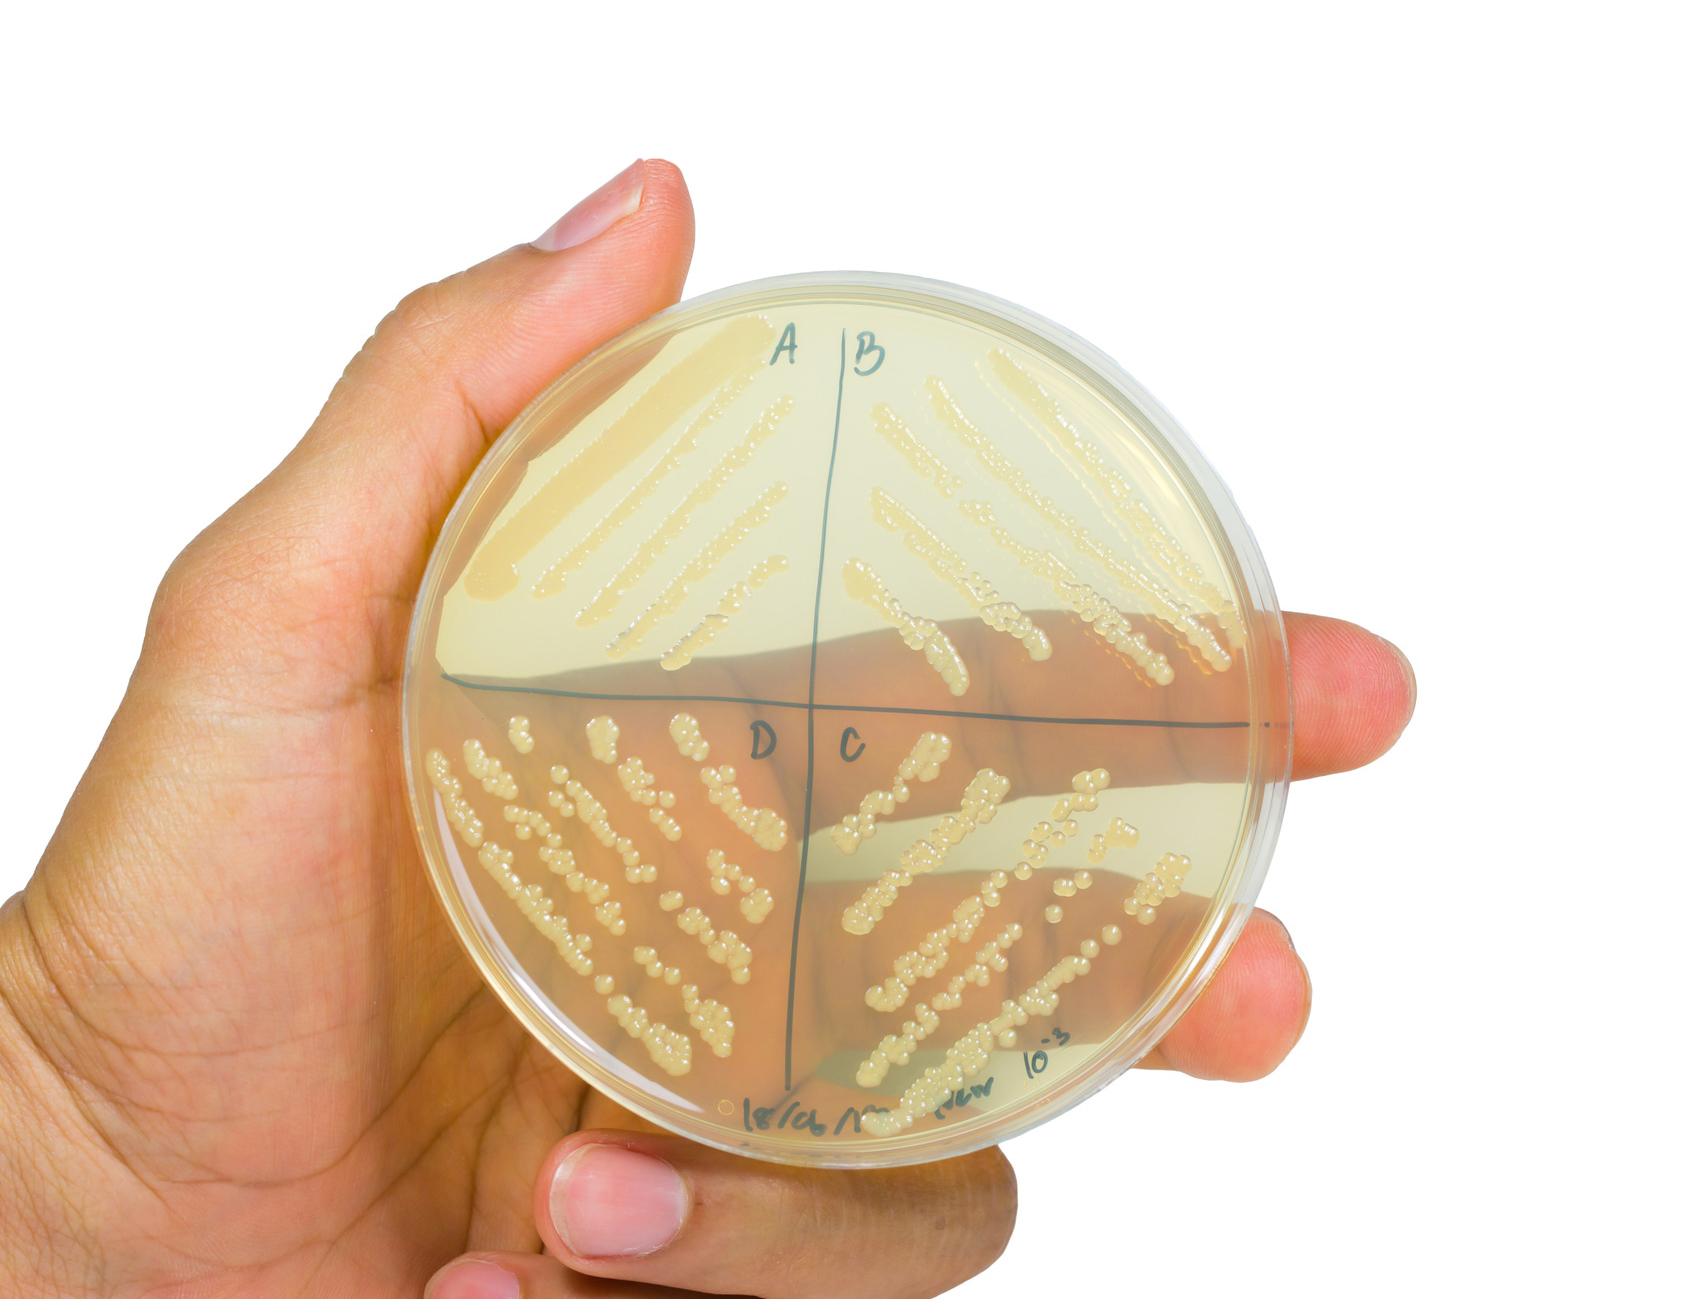 Petri dish with bacterial colonies. .